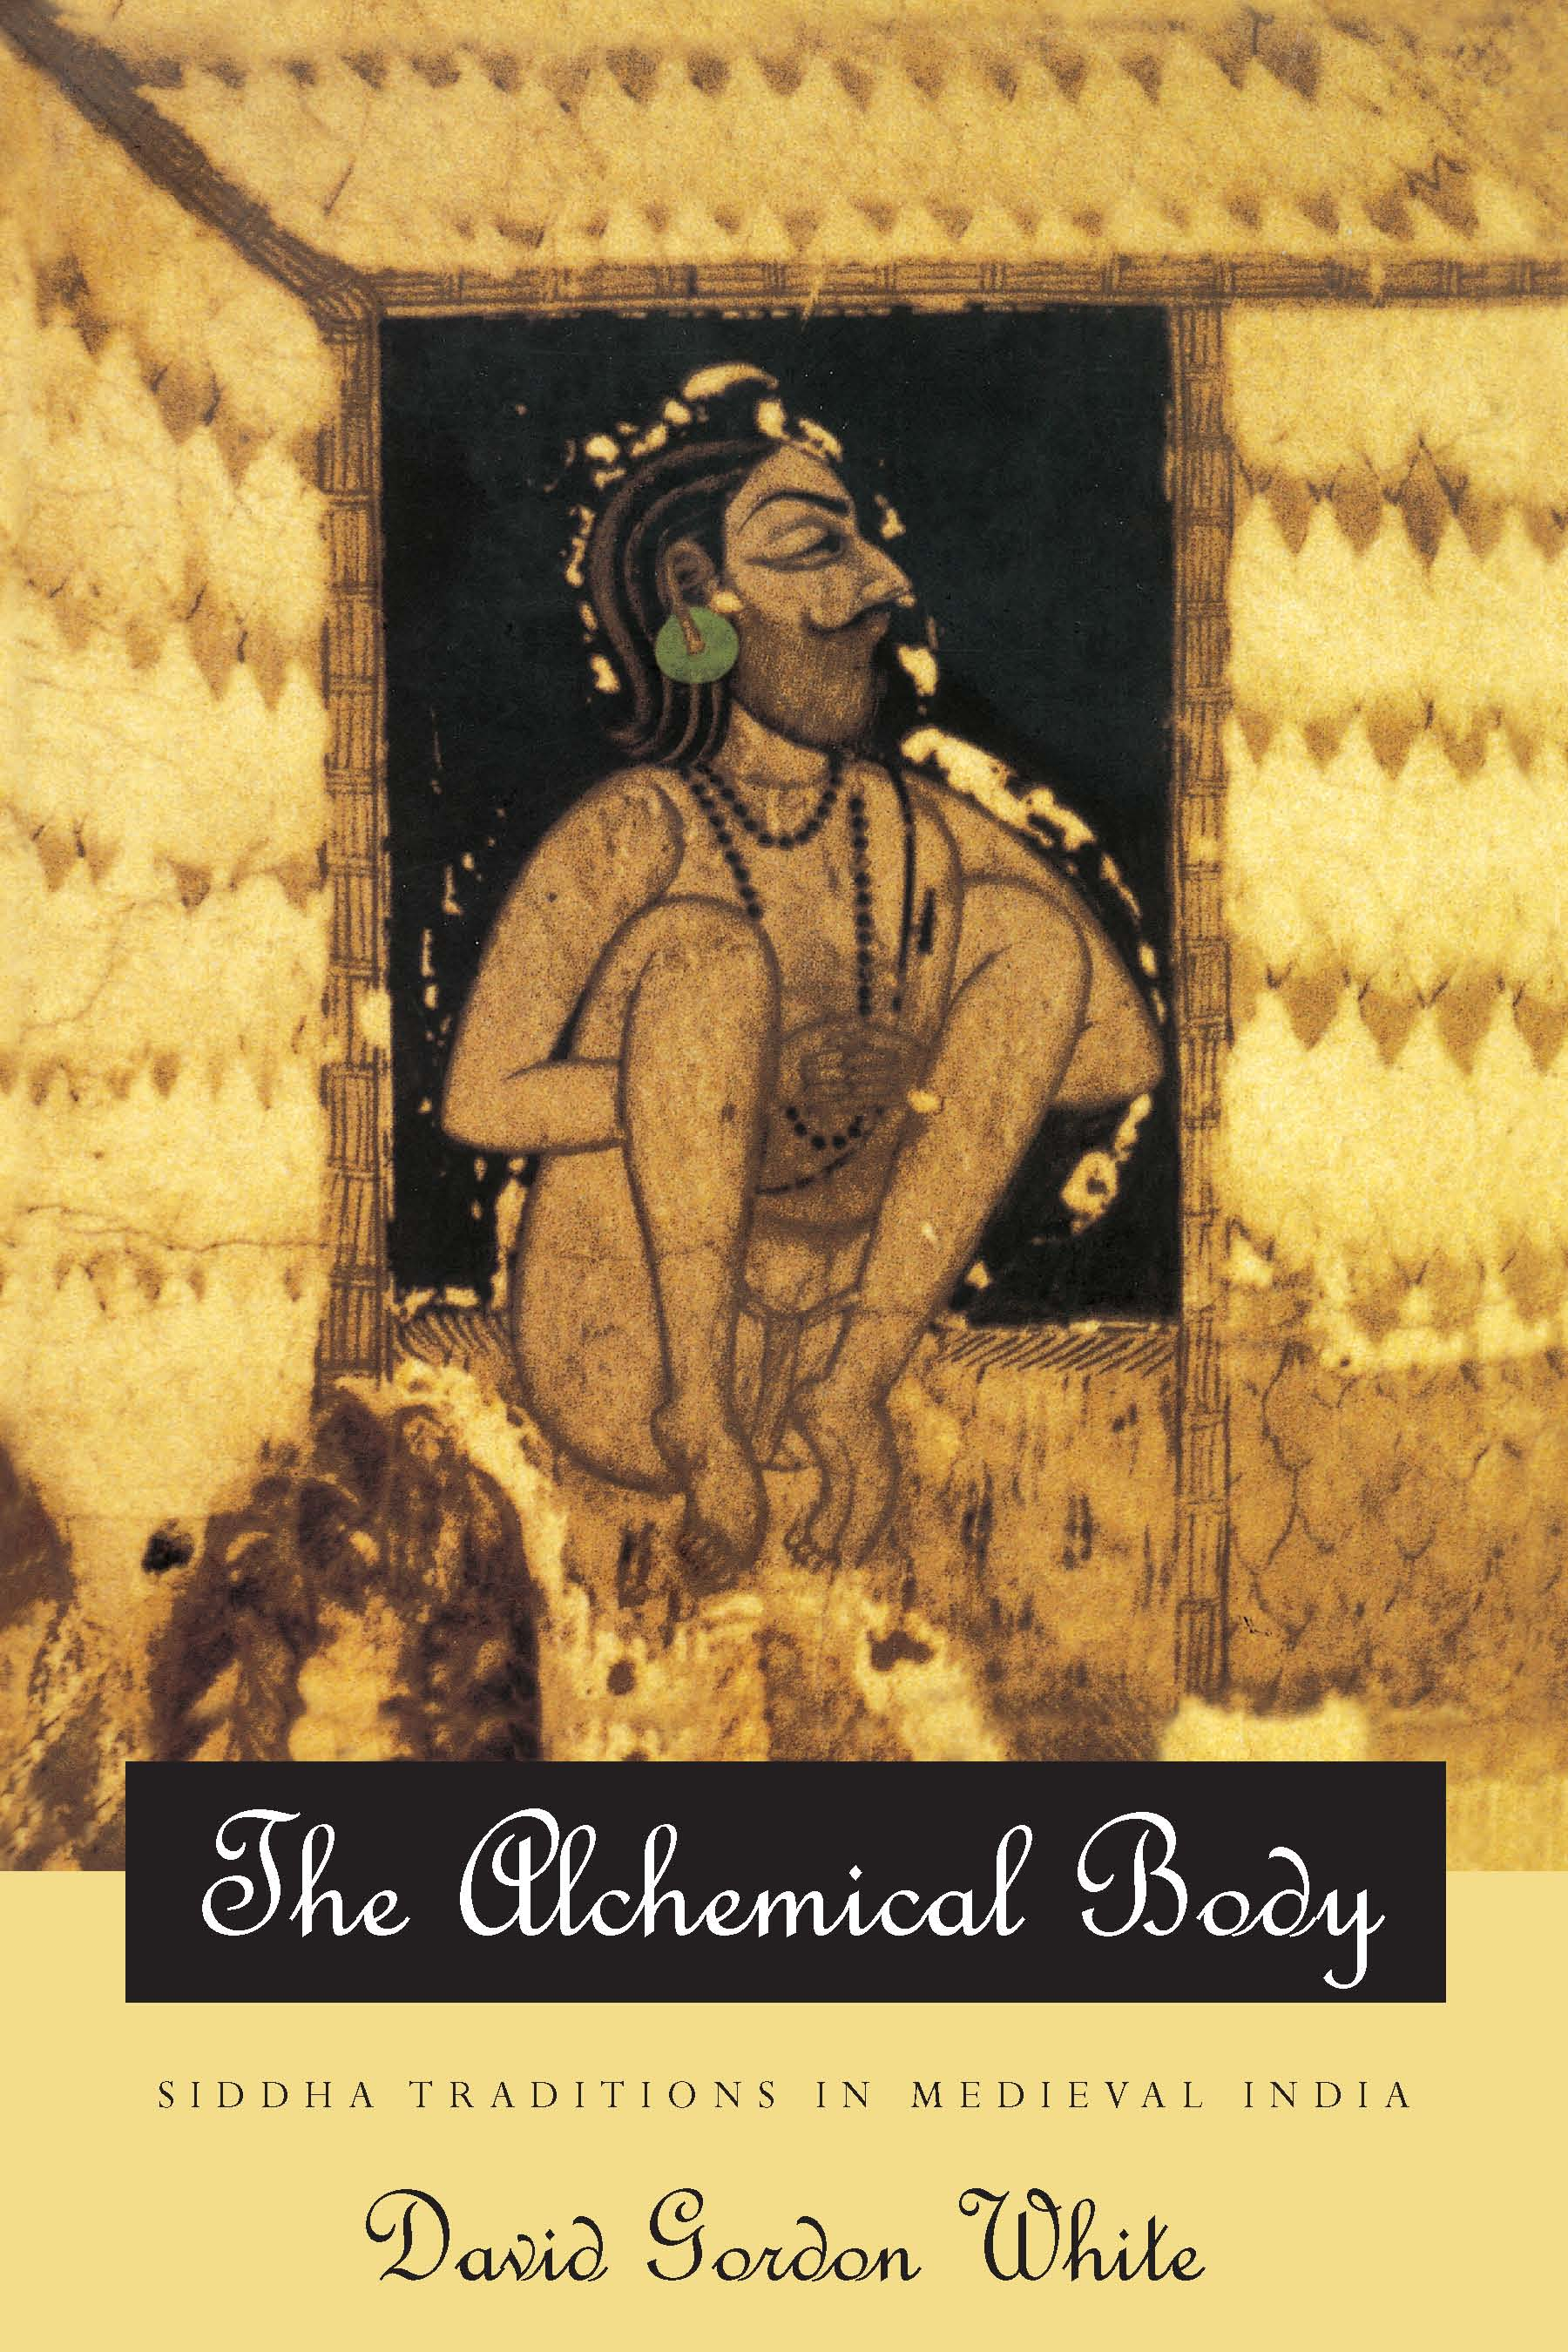 The Alchemical Body Siddha Traditions in Medieval India